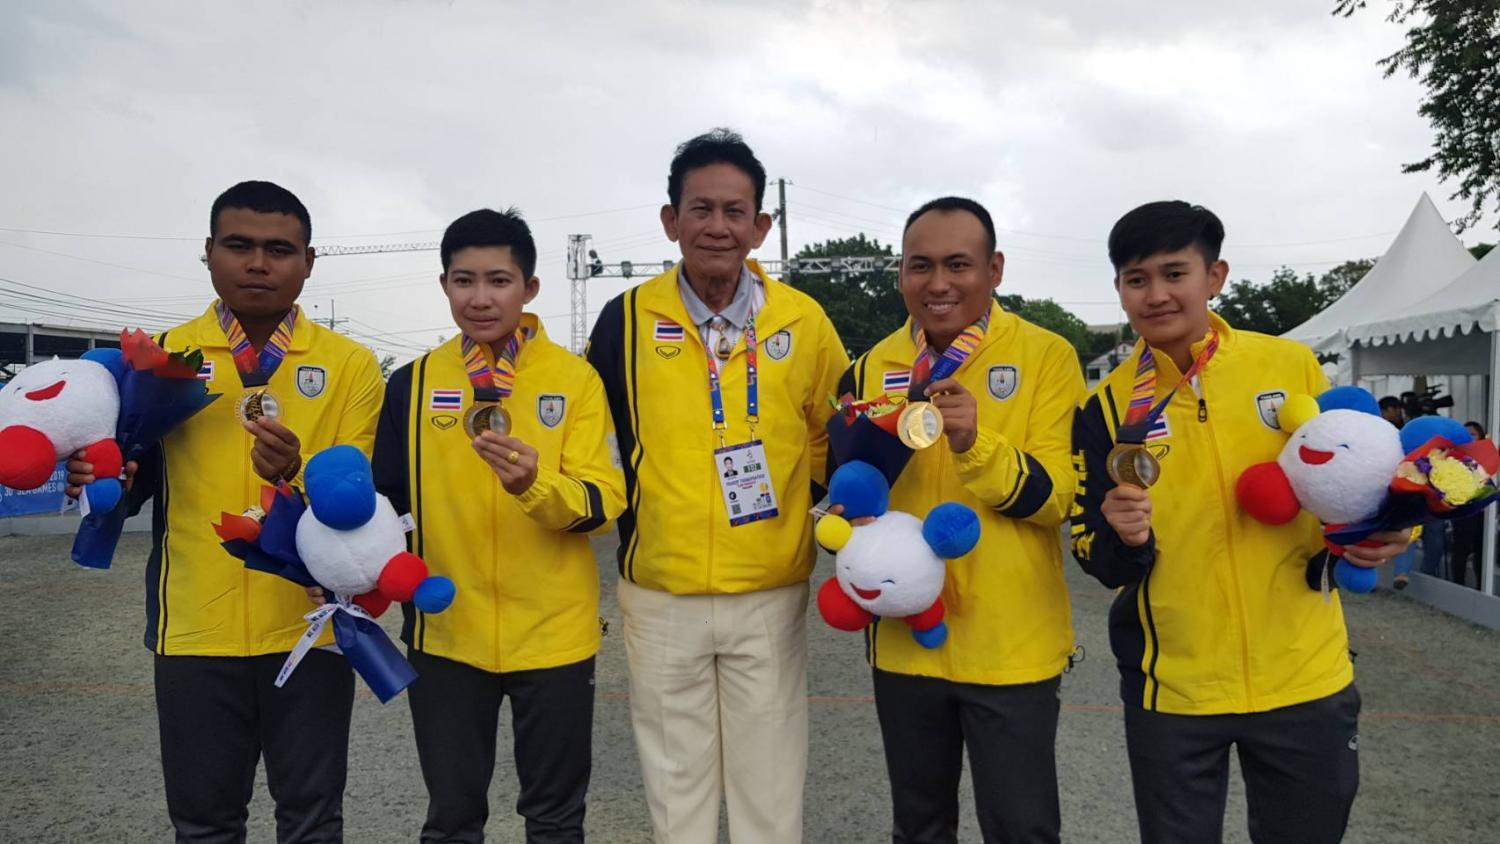 The petanque doubles teams with their gold medals.